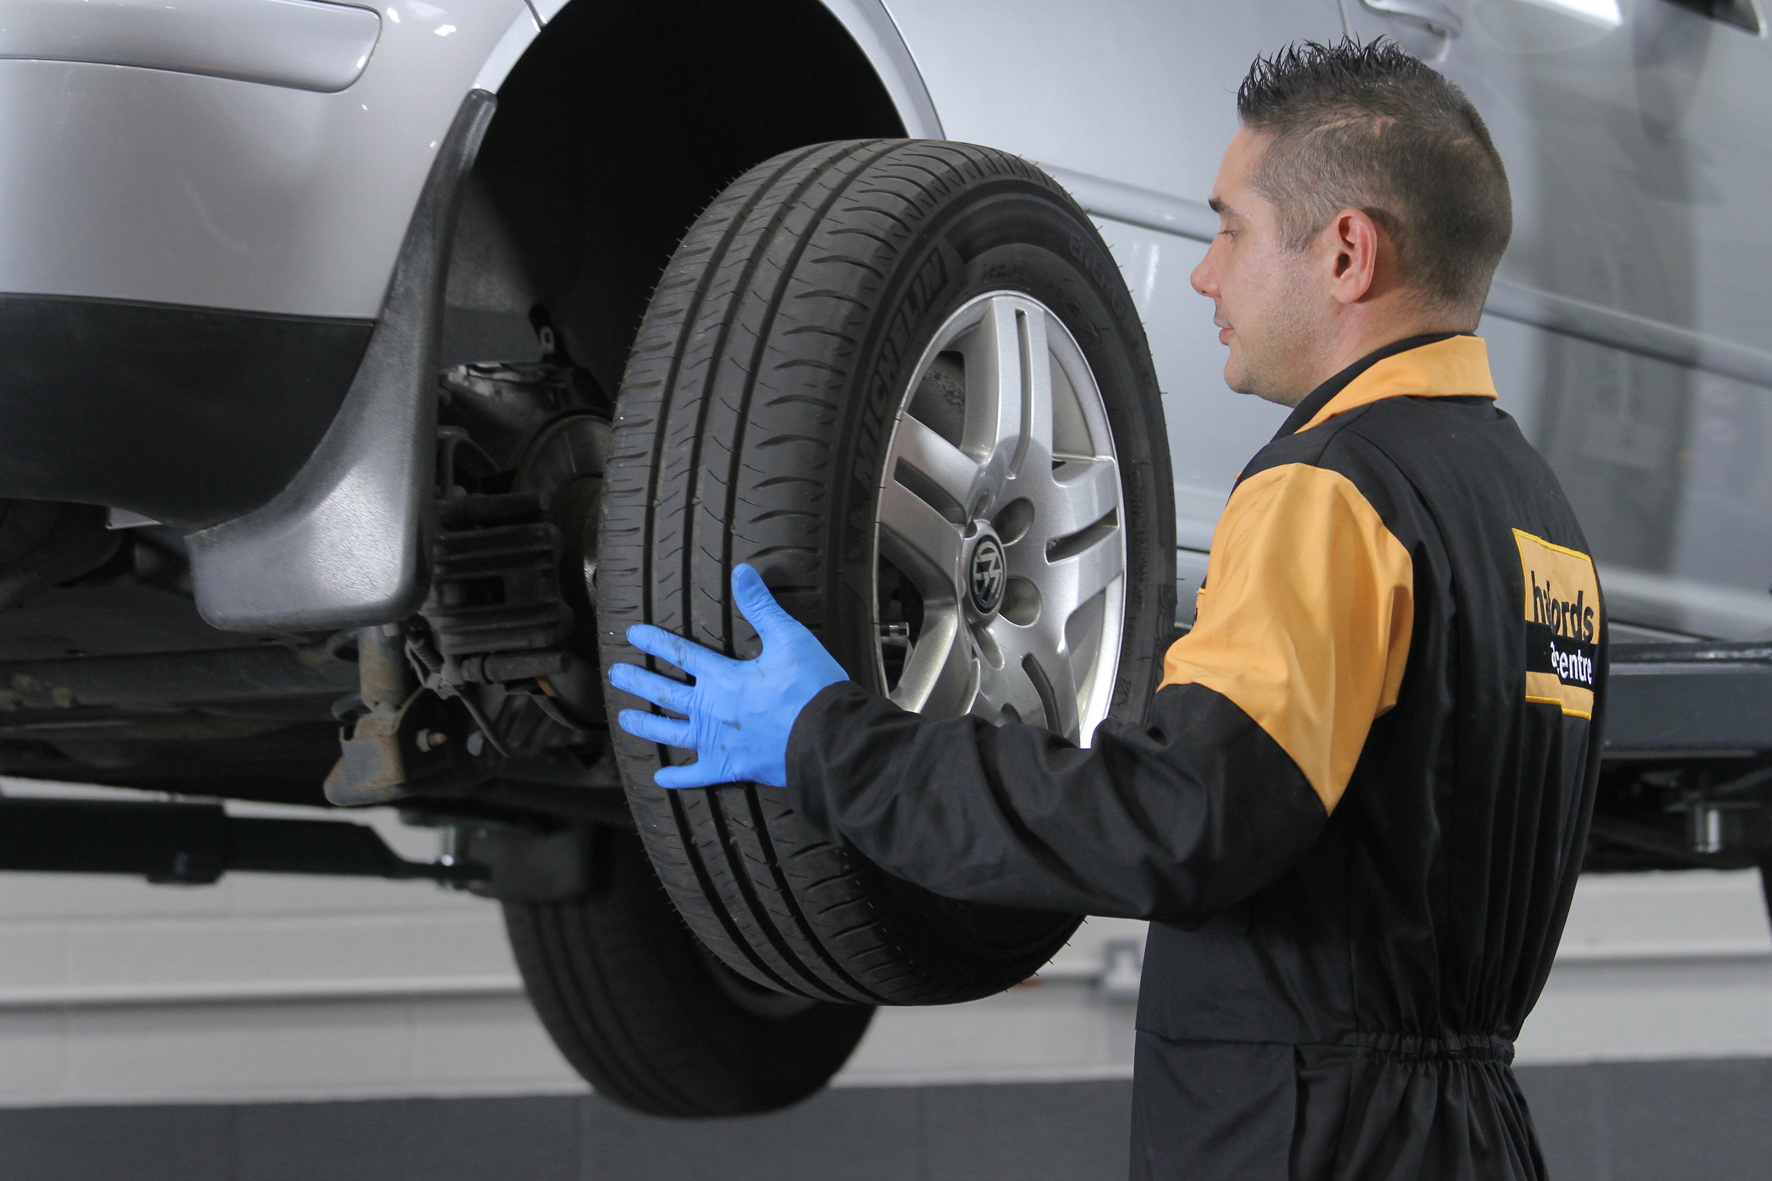 Fast-fit garages offer convenience and the ability to spread costs